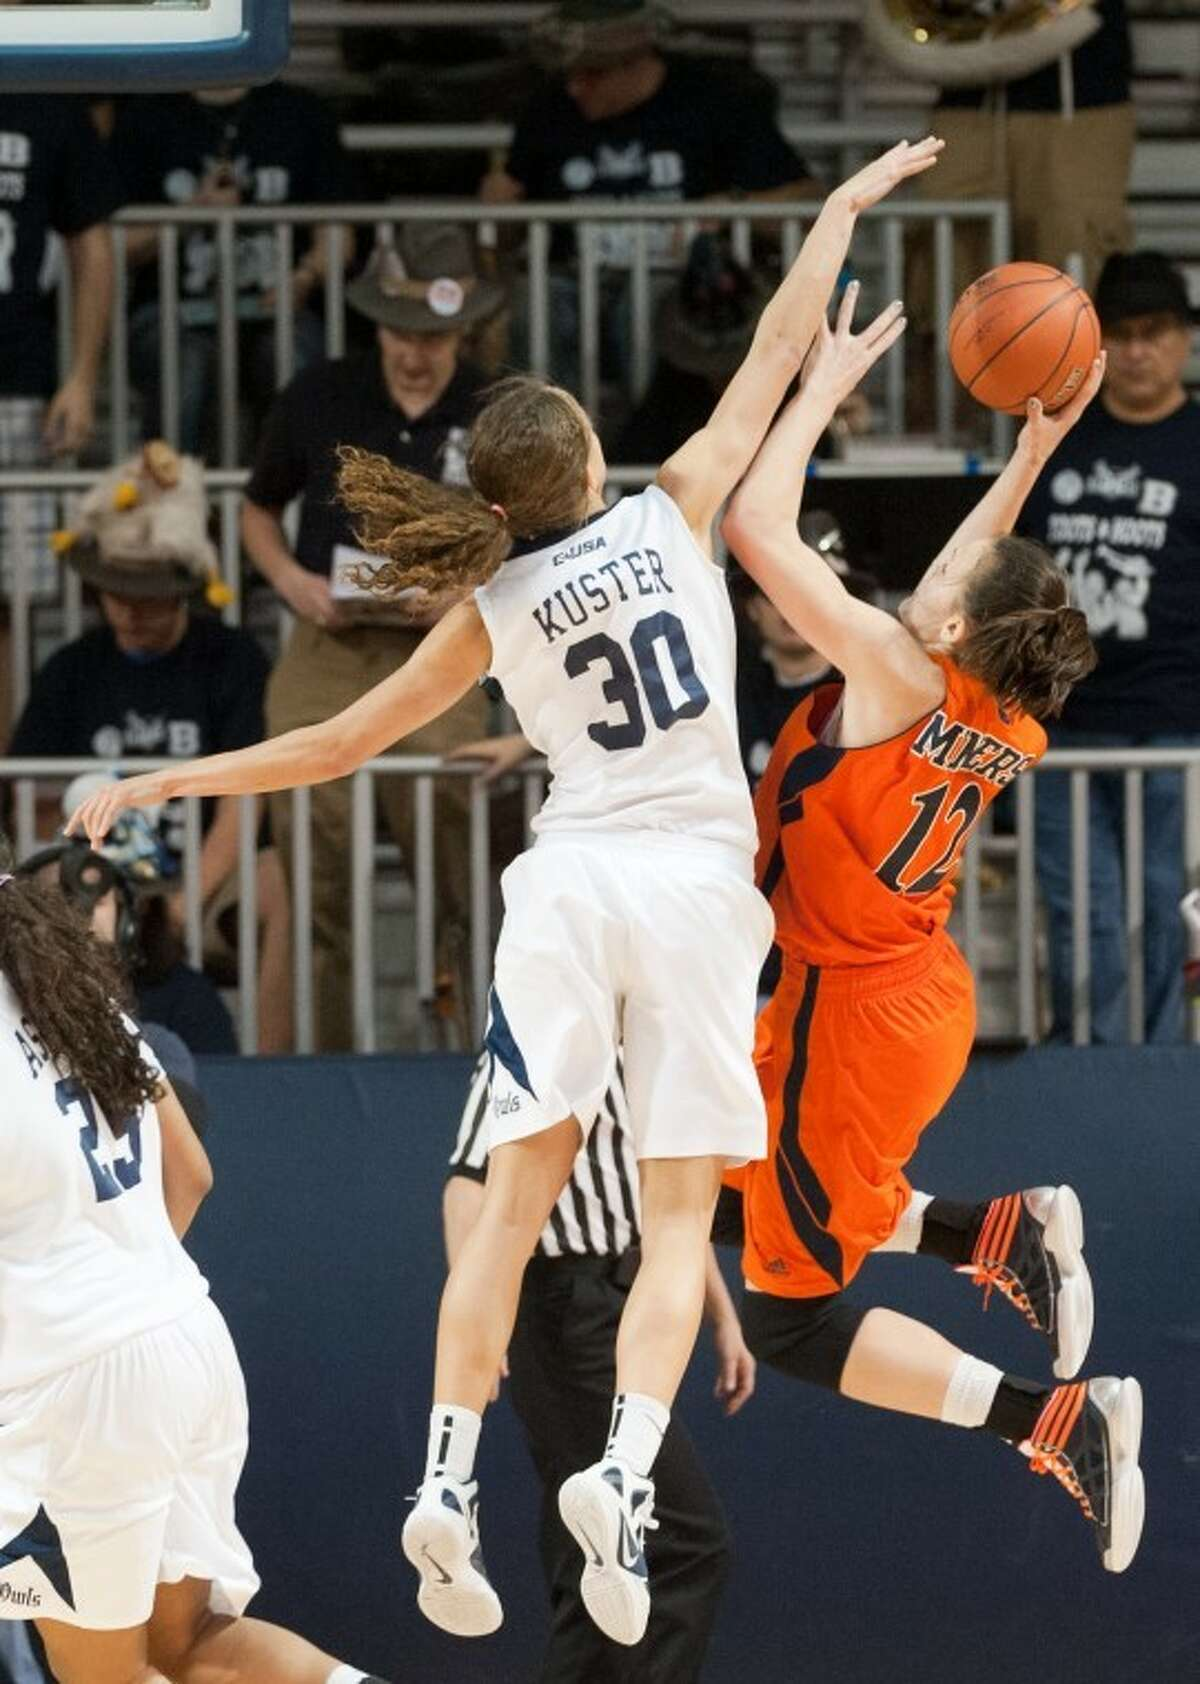 UTEP's Anete Steinberga goes for the basket but is blocked by Rice's Jessica Kuster in the second period. Kuster led the Owls with 11 points, eight rebounds and four blocks.